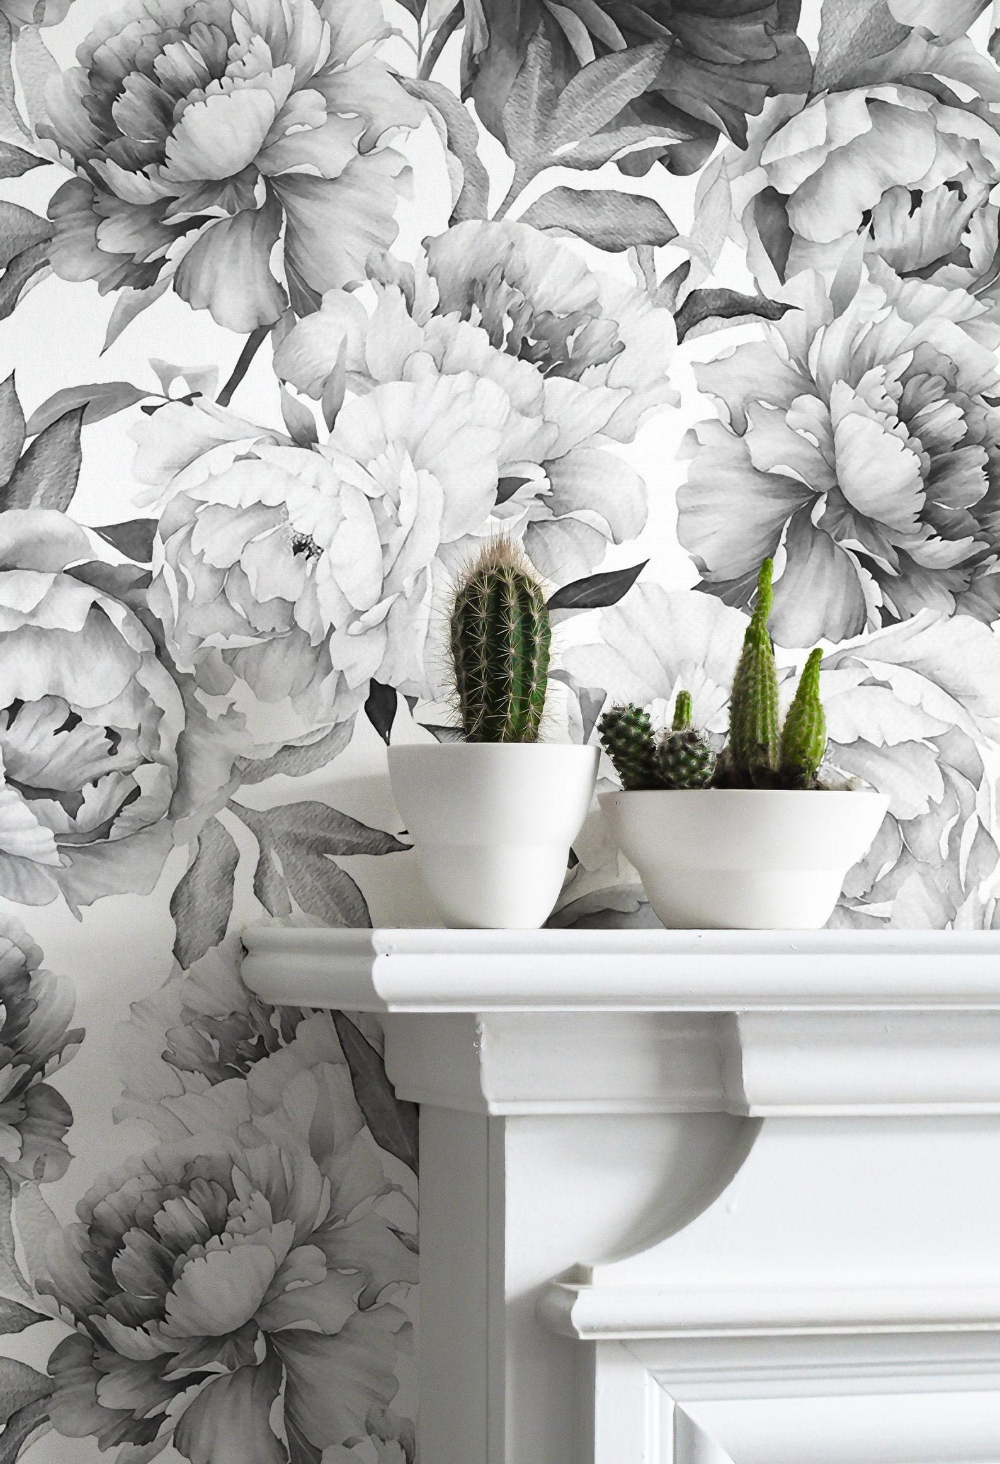 Giant Black And White Peony Removable Wallpaper Mural Etsy In 2020 Floral Wallpaper Floral Print Wallpaper Mural Wallpaper